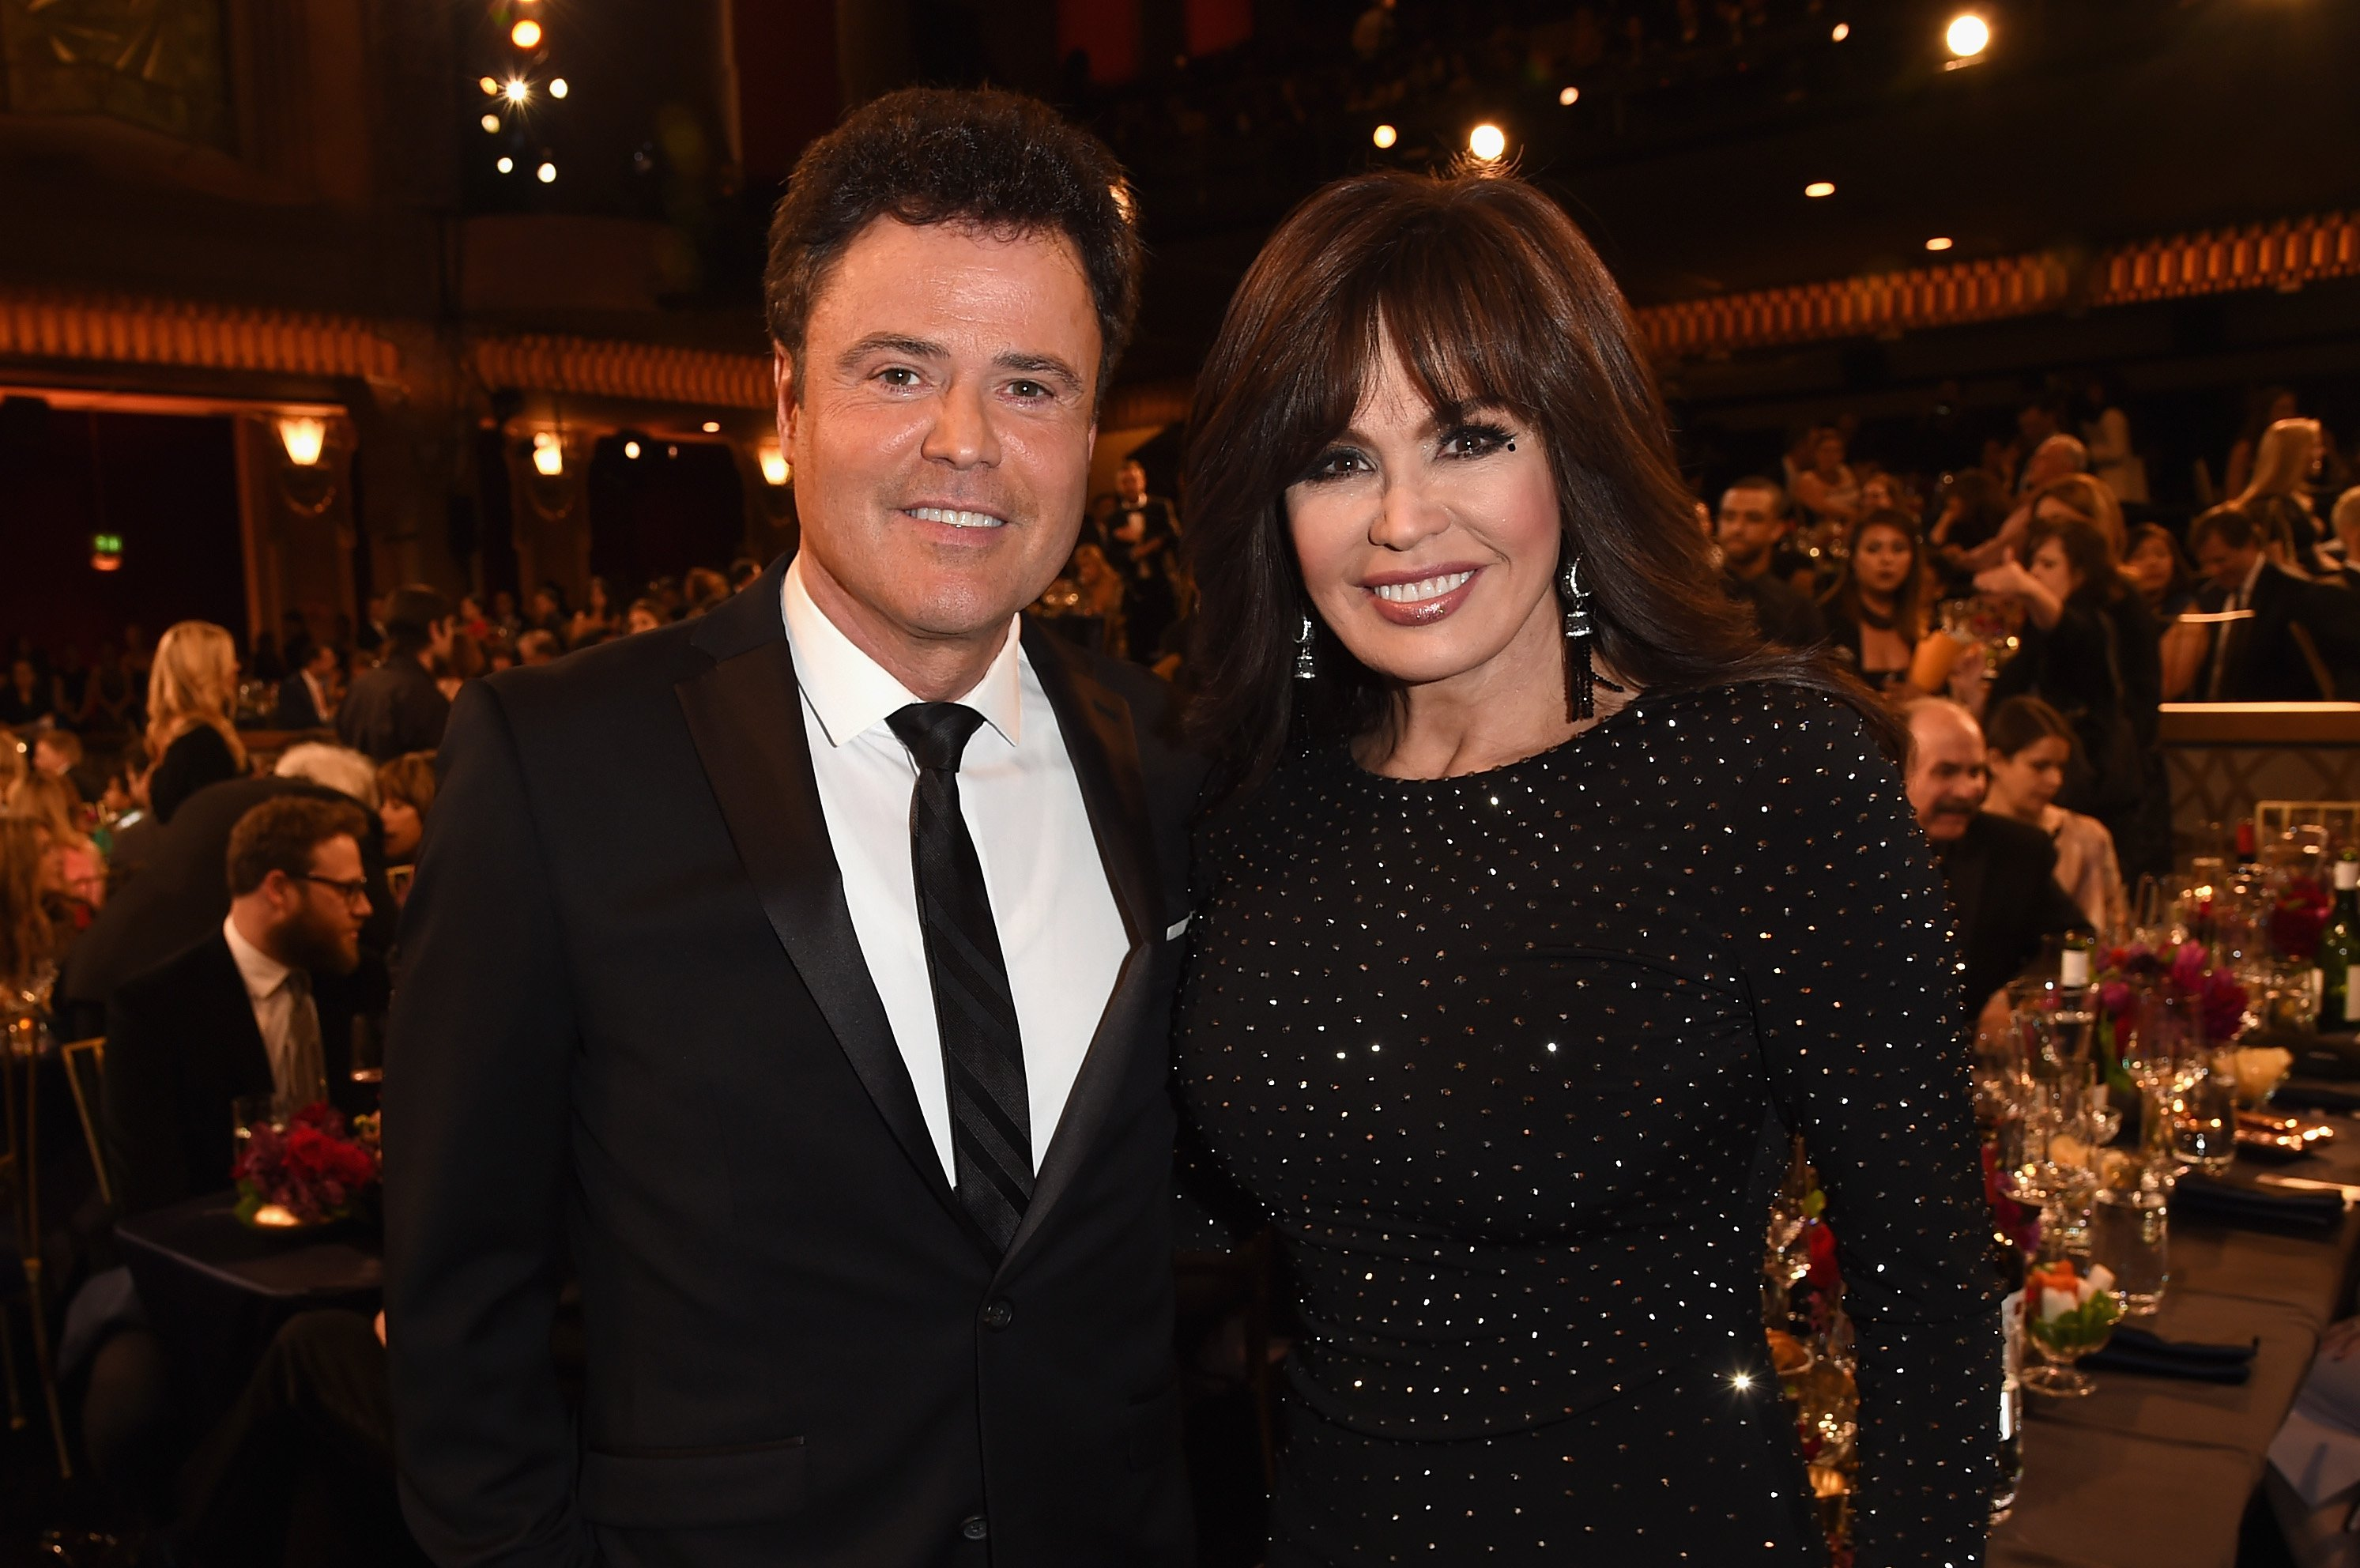 Donny Osmond and Marie Osmond attend the TV Land Awards in Beverly Hills, California on April 11, 2015 | Photo: Getty Images